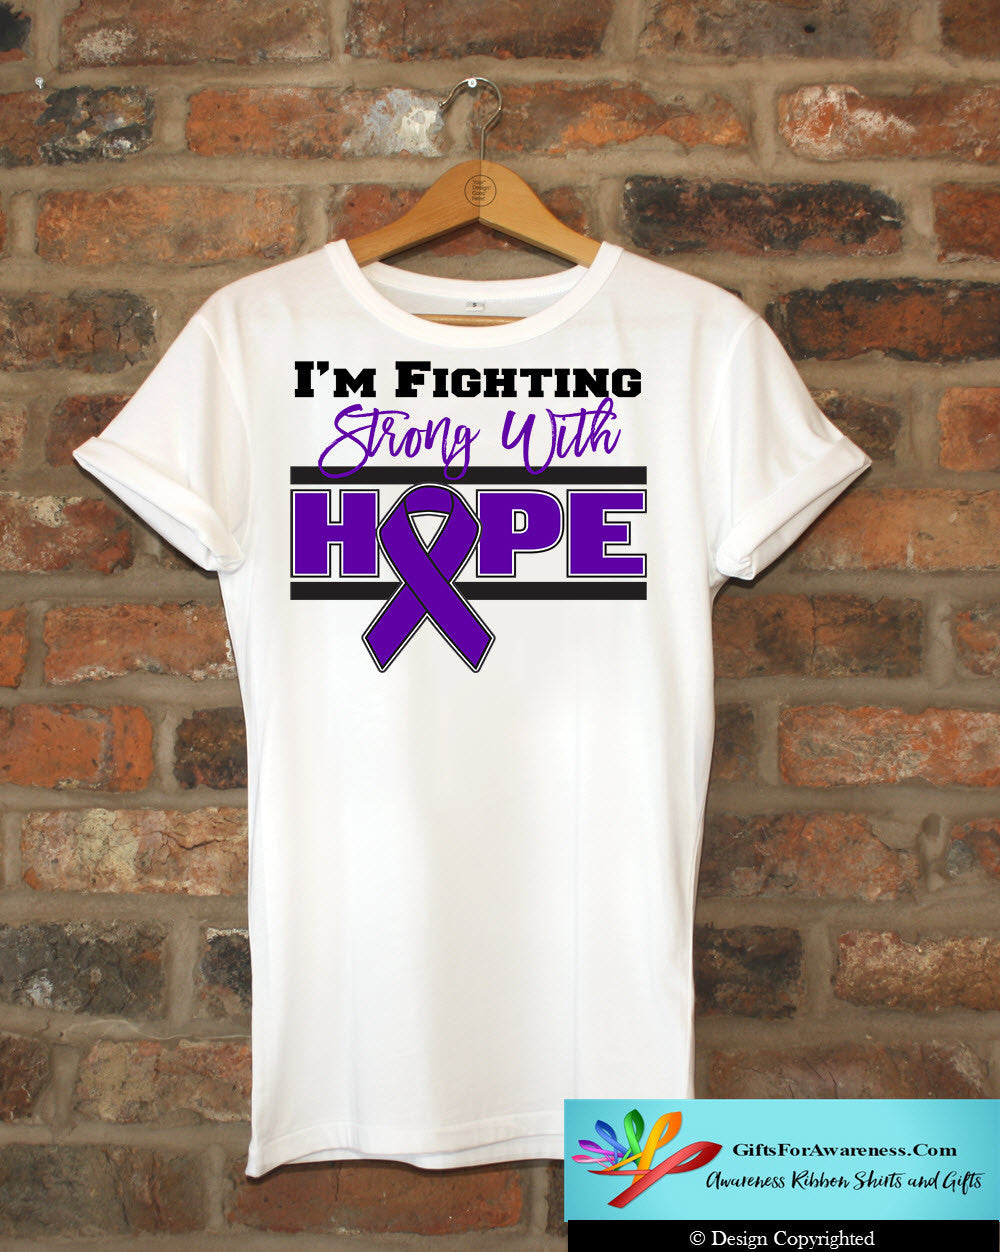 Leiomyosarcoma I'm Fighting Strong With Hope Shirts - GiftsForAwareness